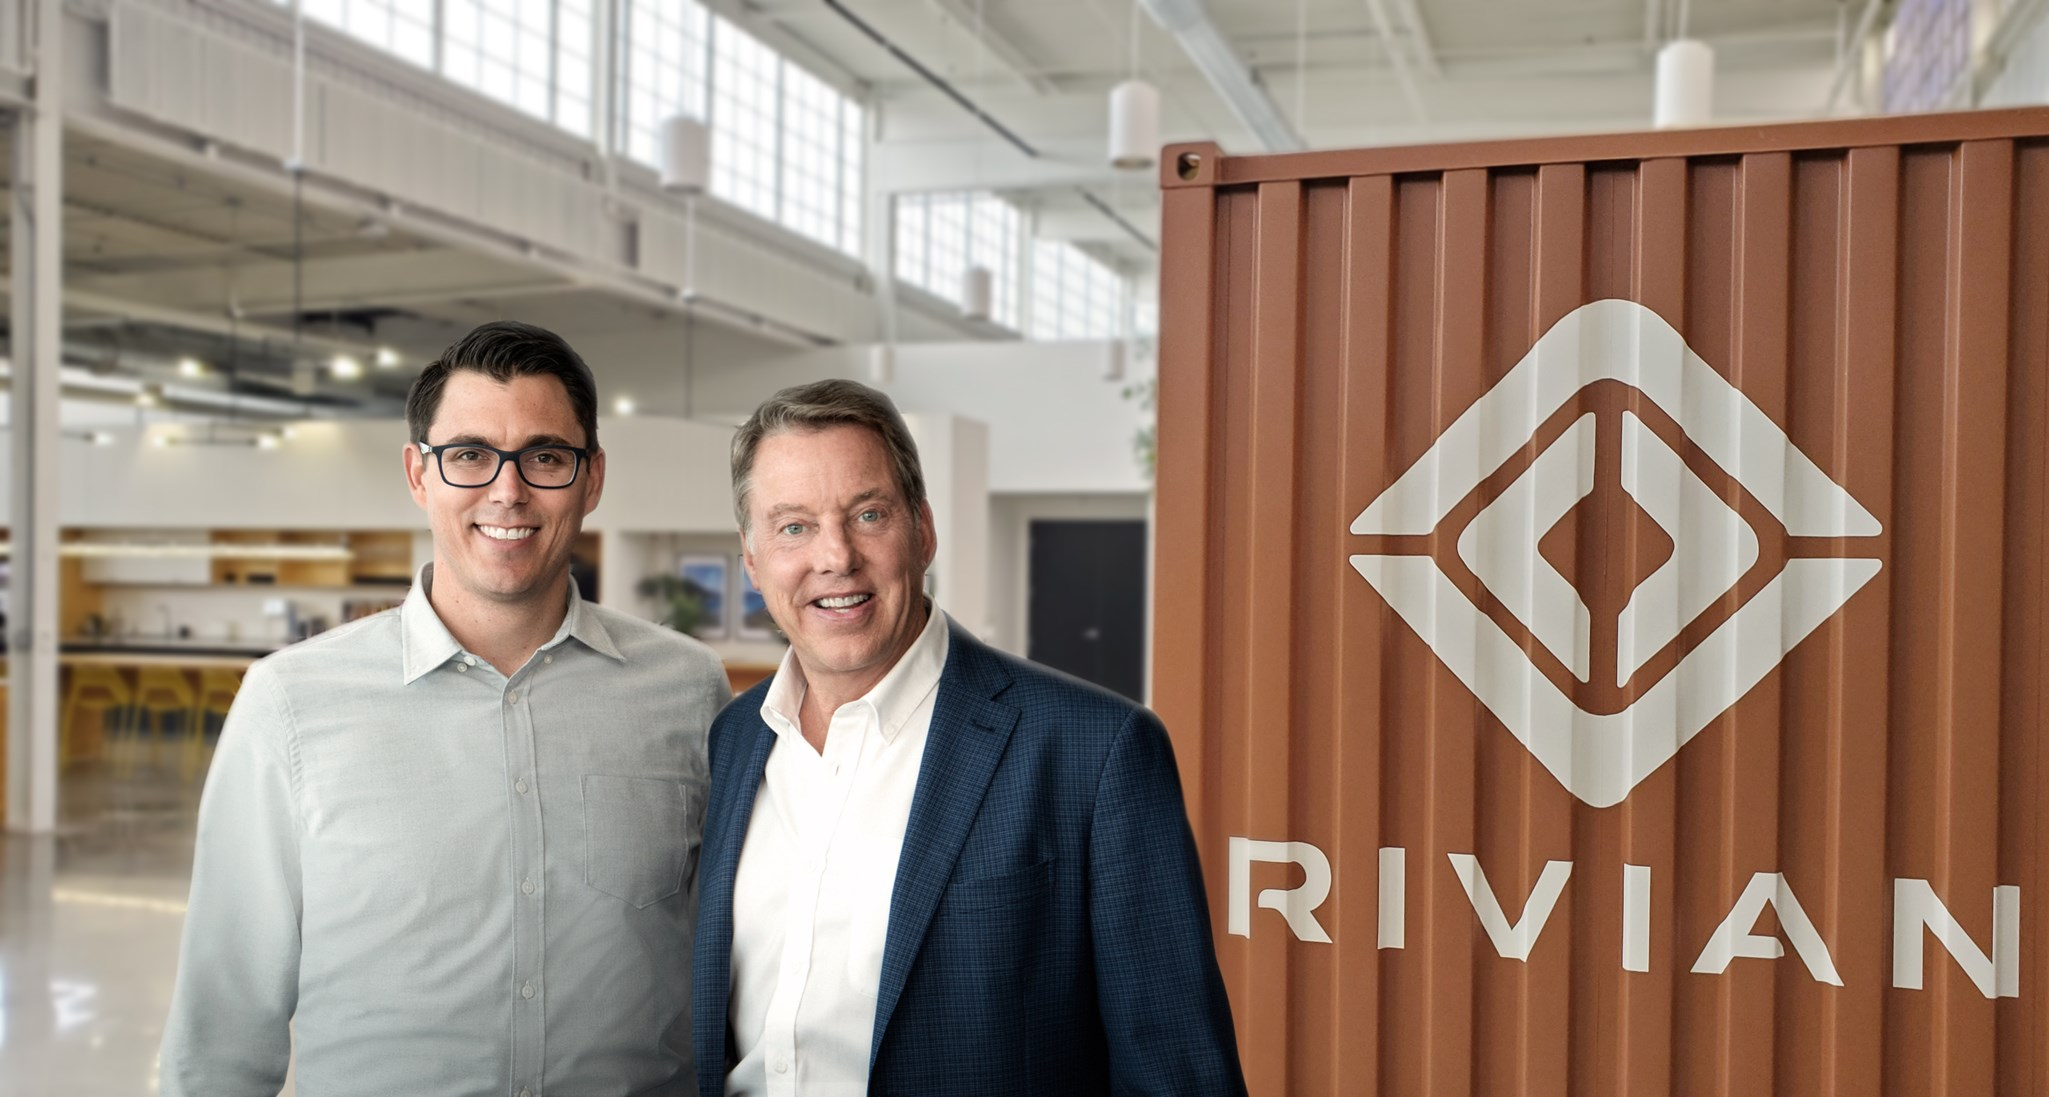 Ford invests $500 million in EV company Rivian